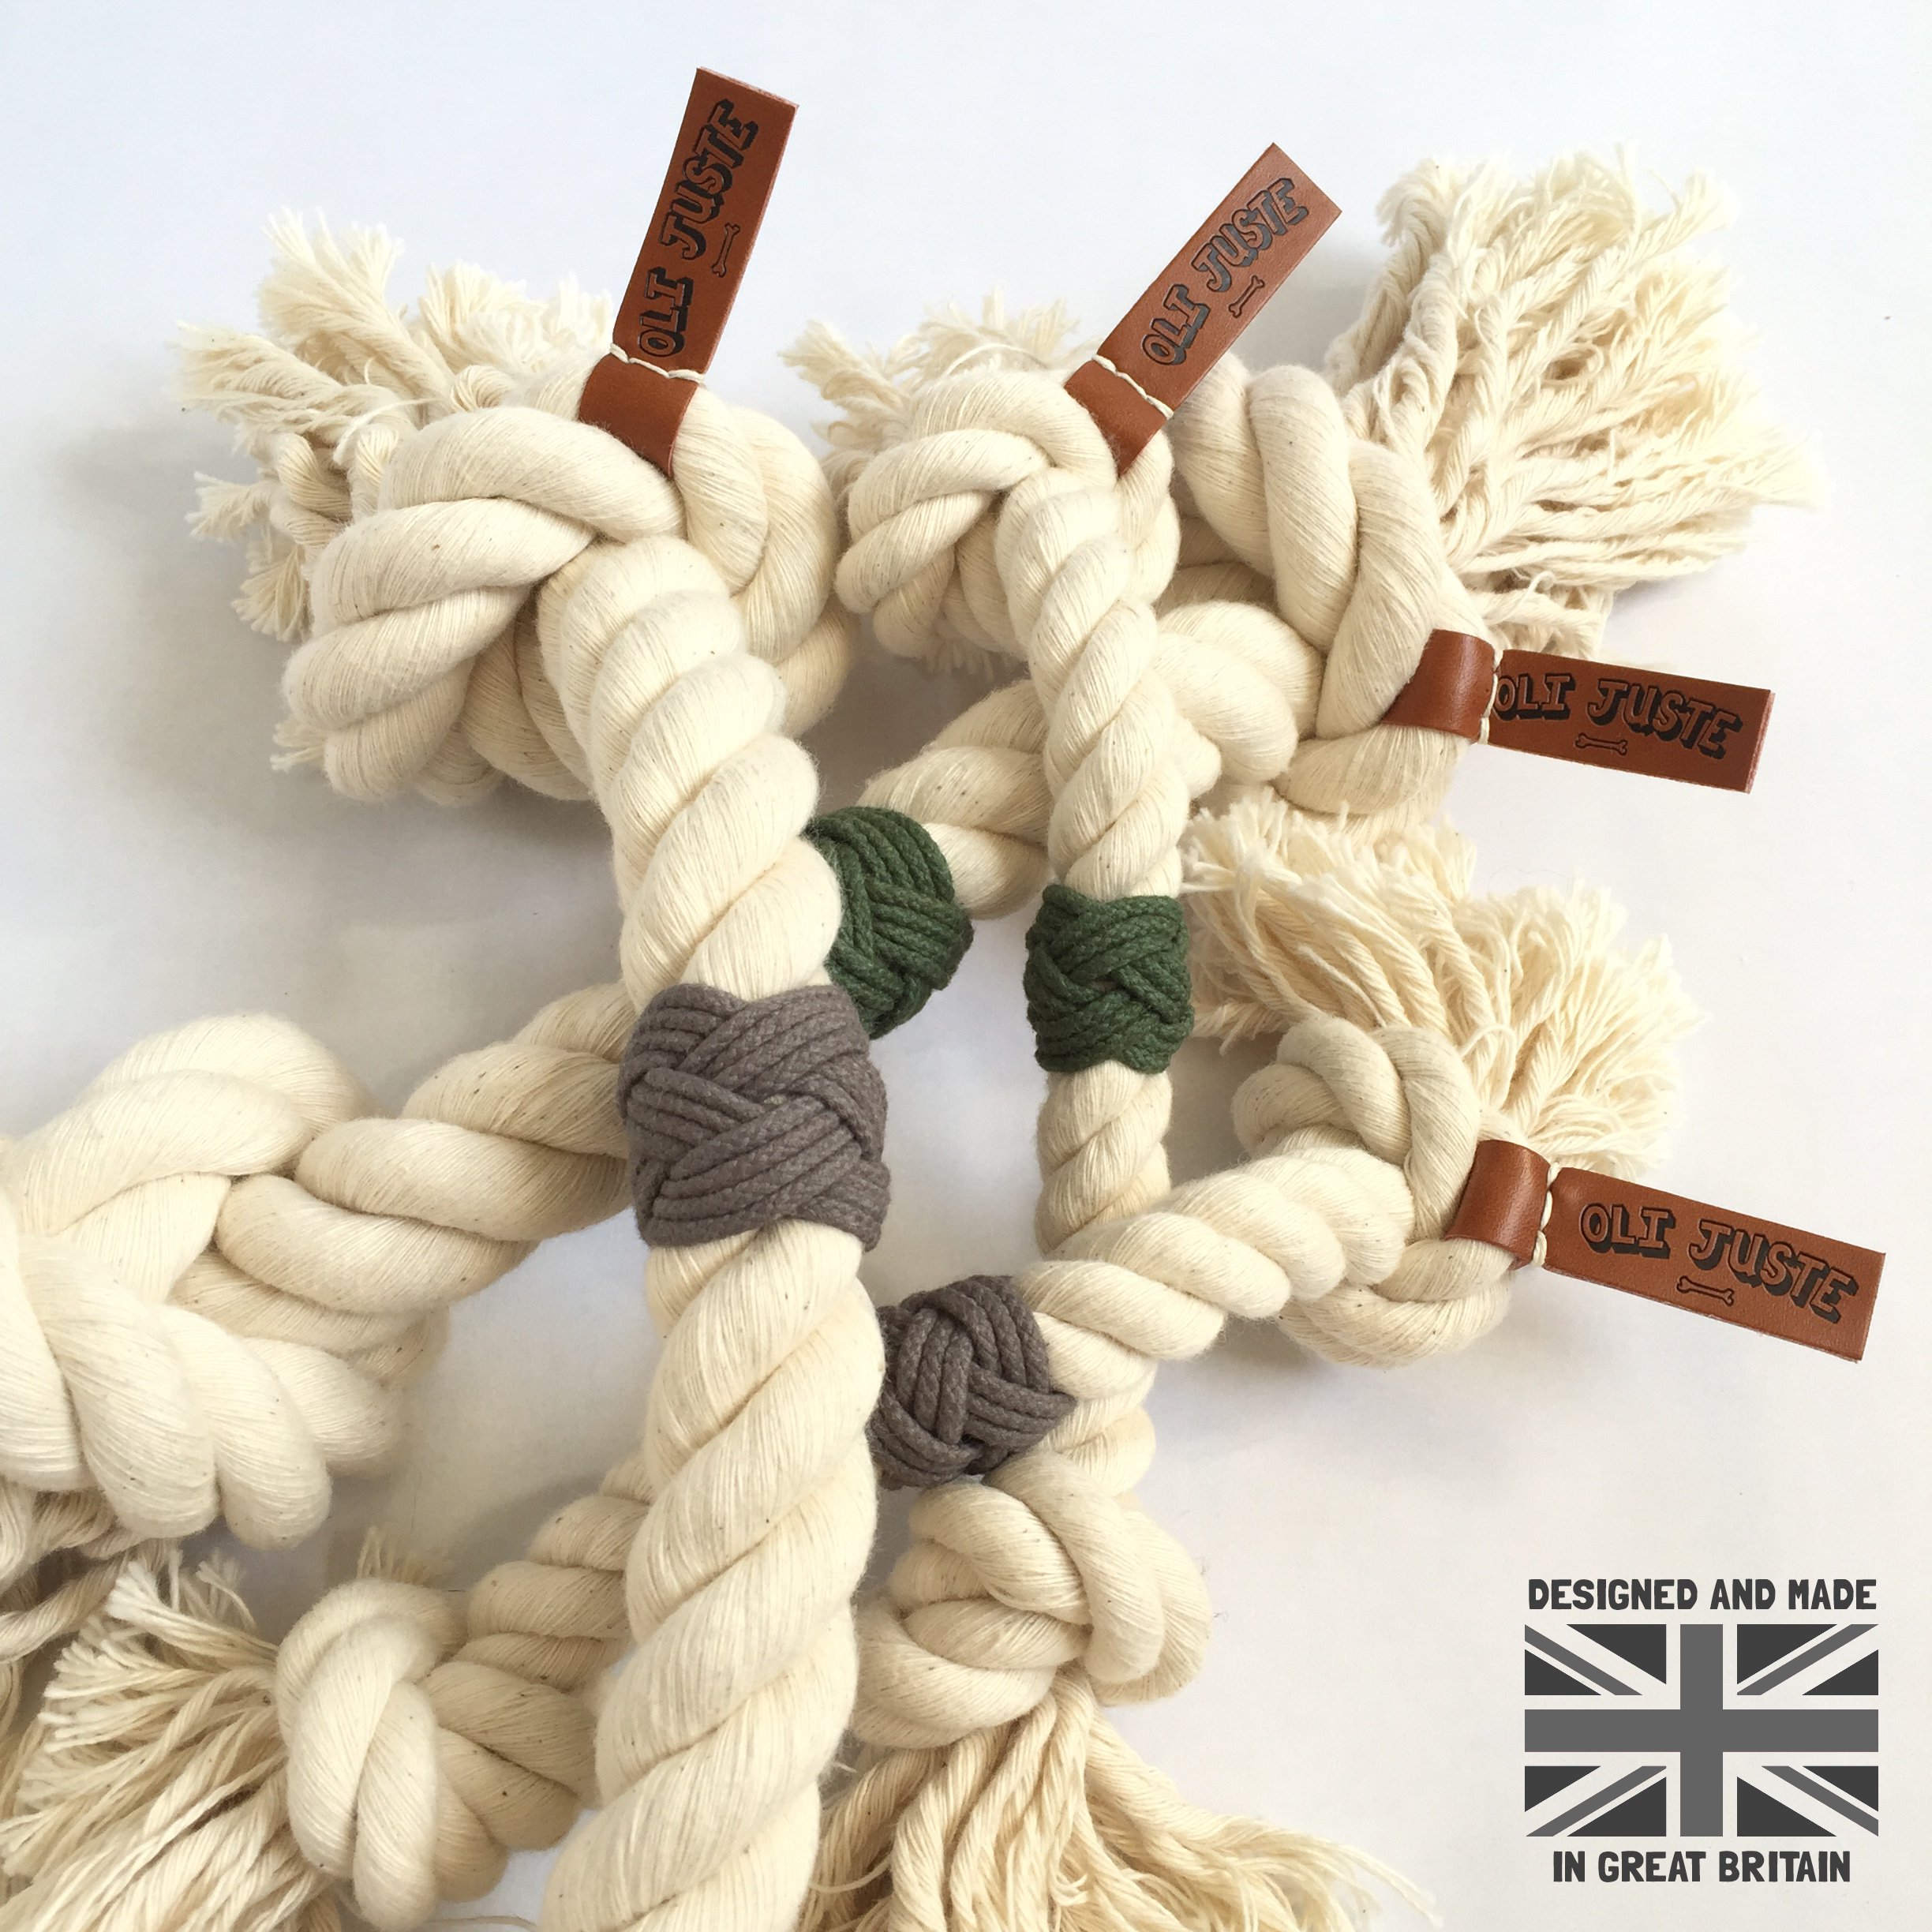 Cotton Tug Dog Rope - From £15.00